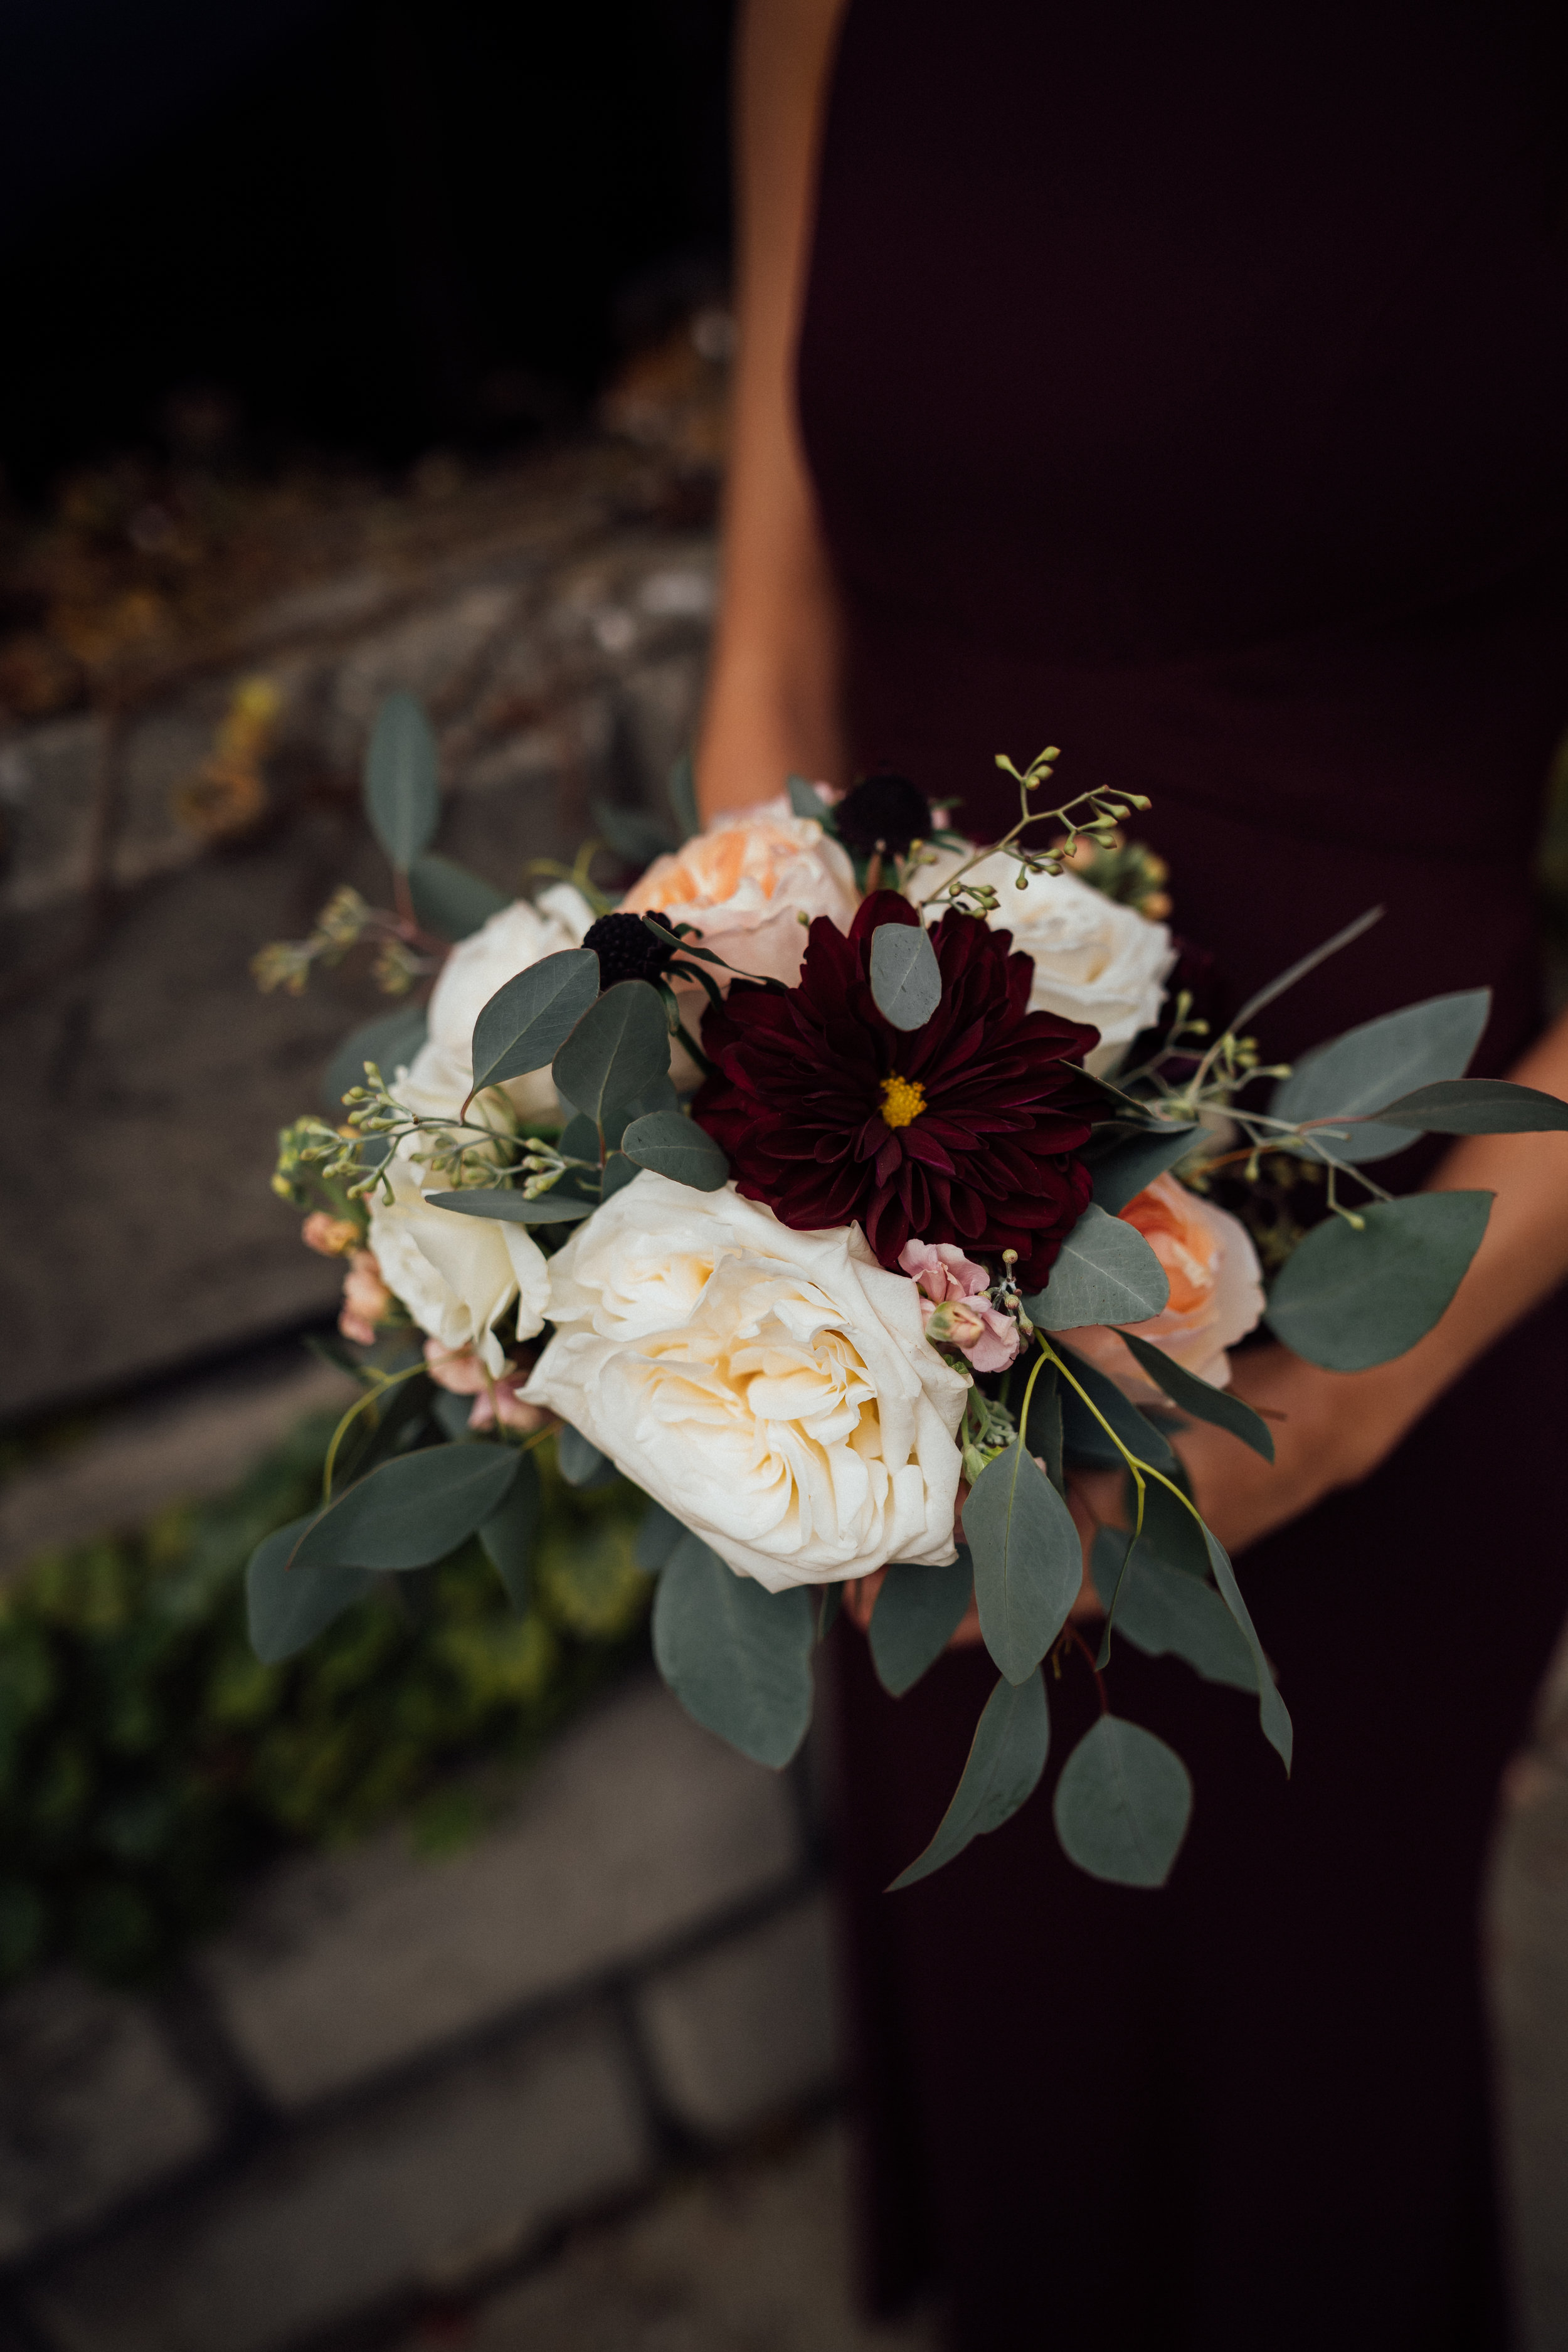 Maroon and Blush bridesmaids bouquet | Fall Bouquet | Chicago Illuminating Company Wedding | Fall Chicago Wedding | Marriott Marquis Wedding | Chicago Wedding Planner | Your Day by MK